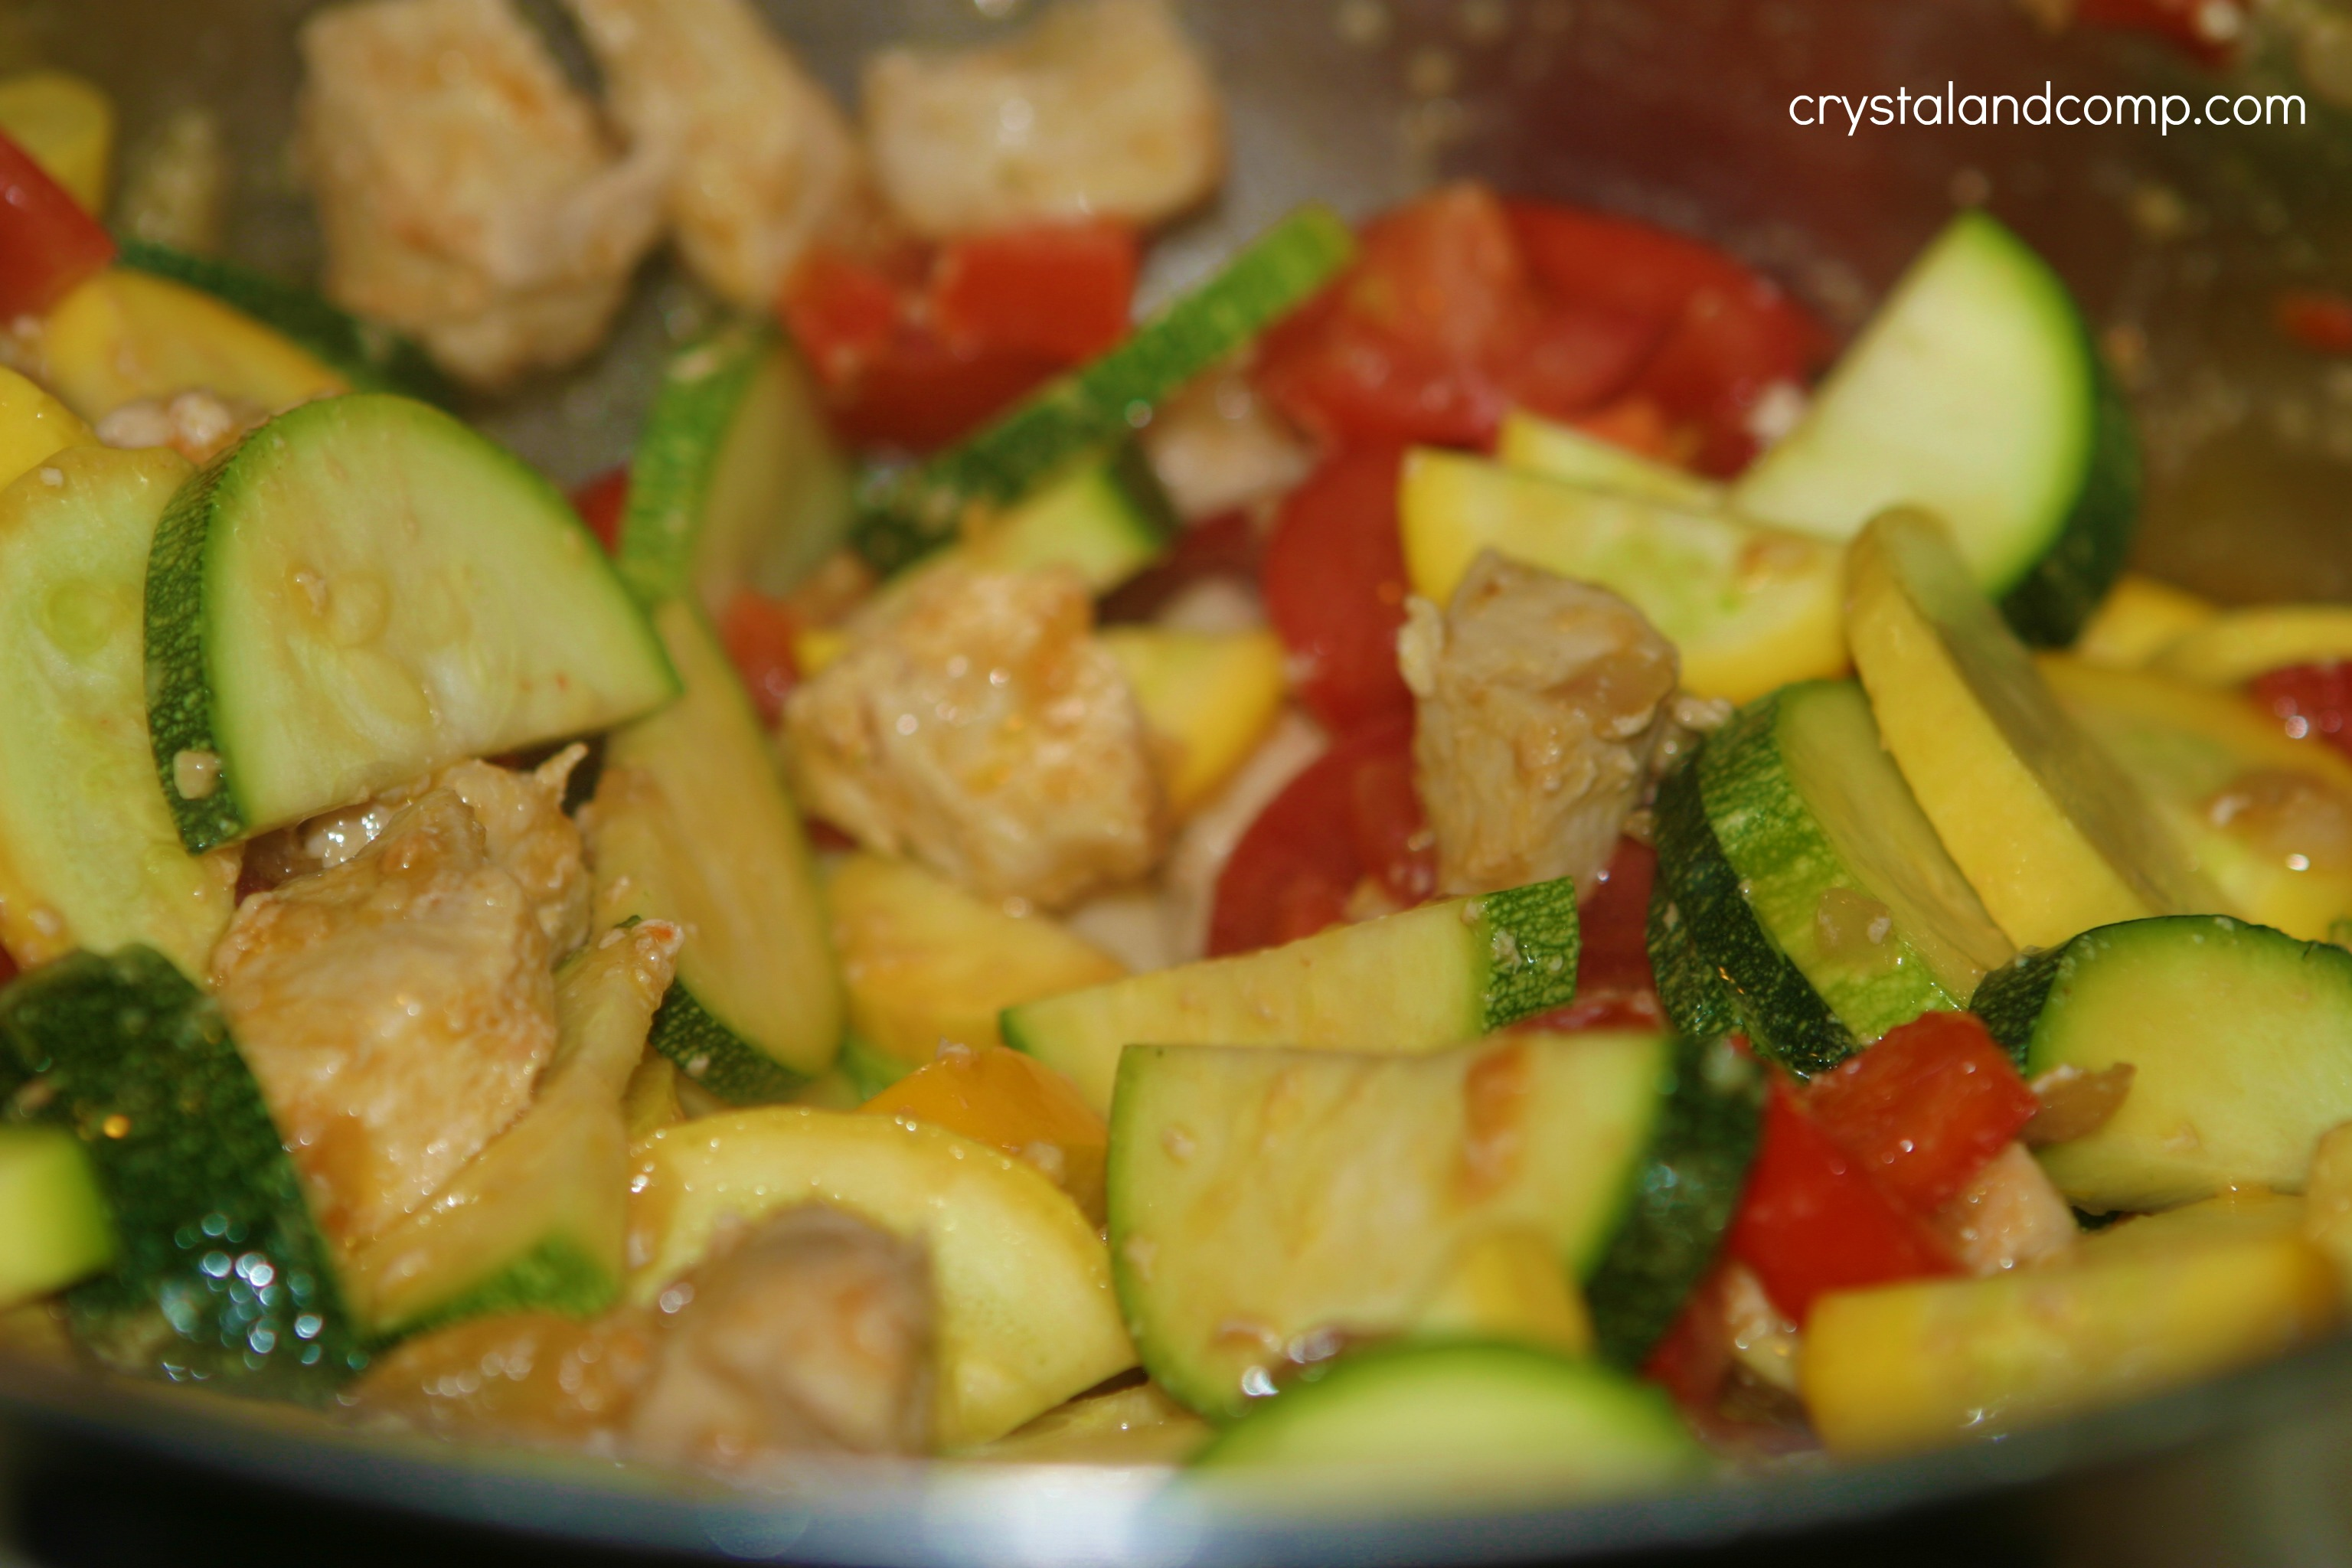 Easy Recipes: Chicken and Summer Squash over Rice | CrystalandComp.com